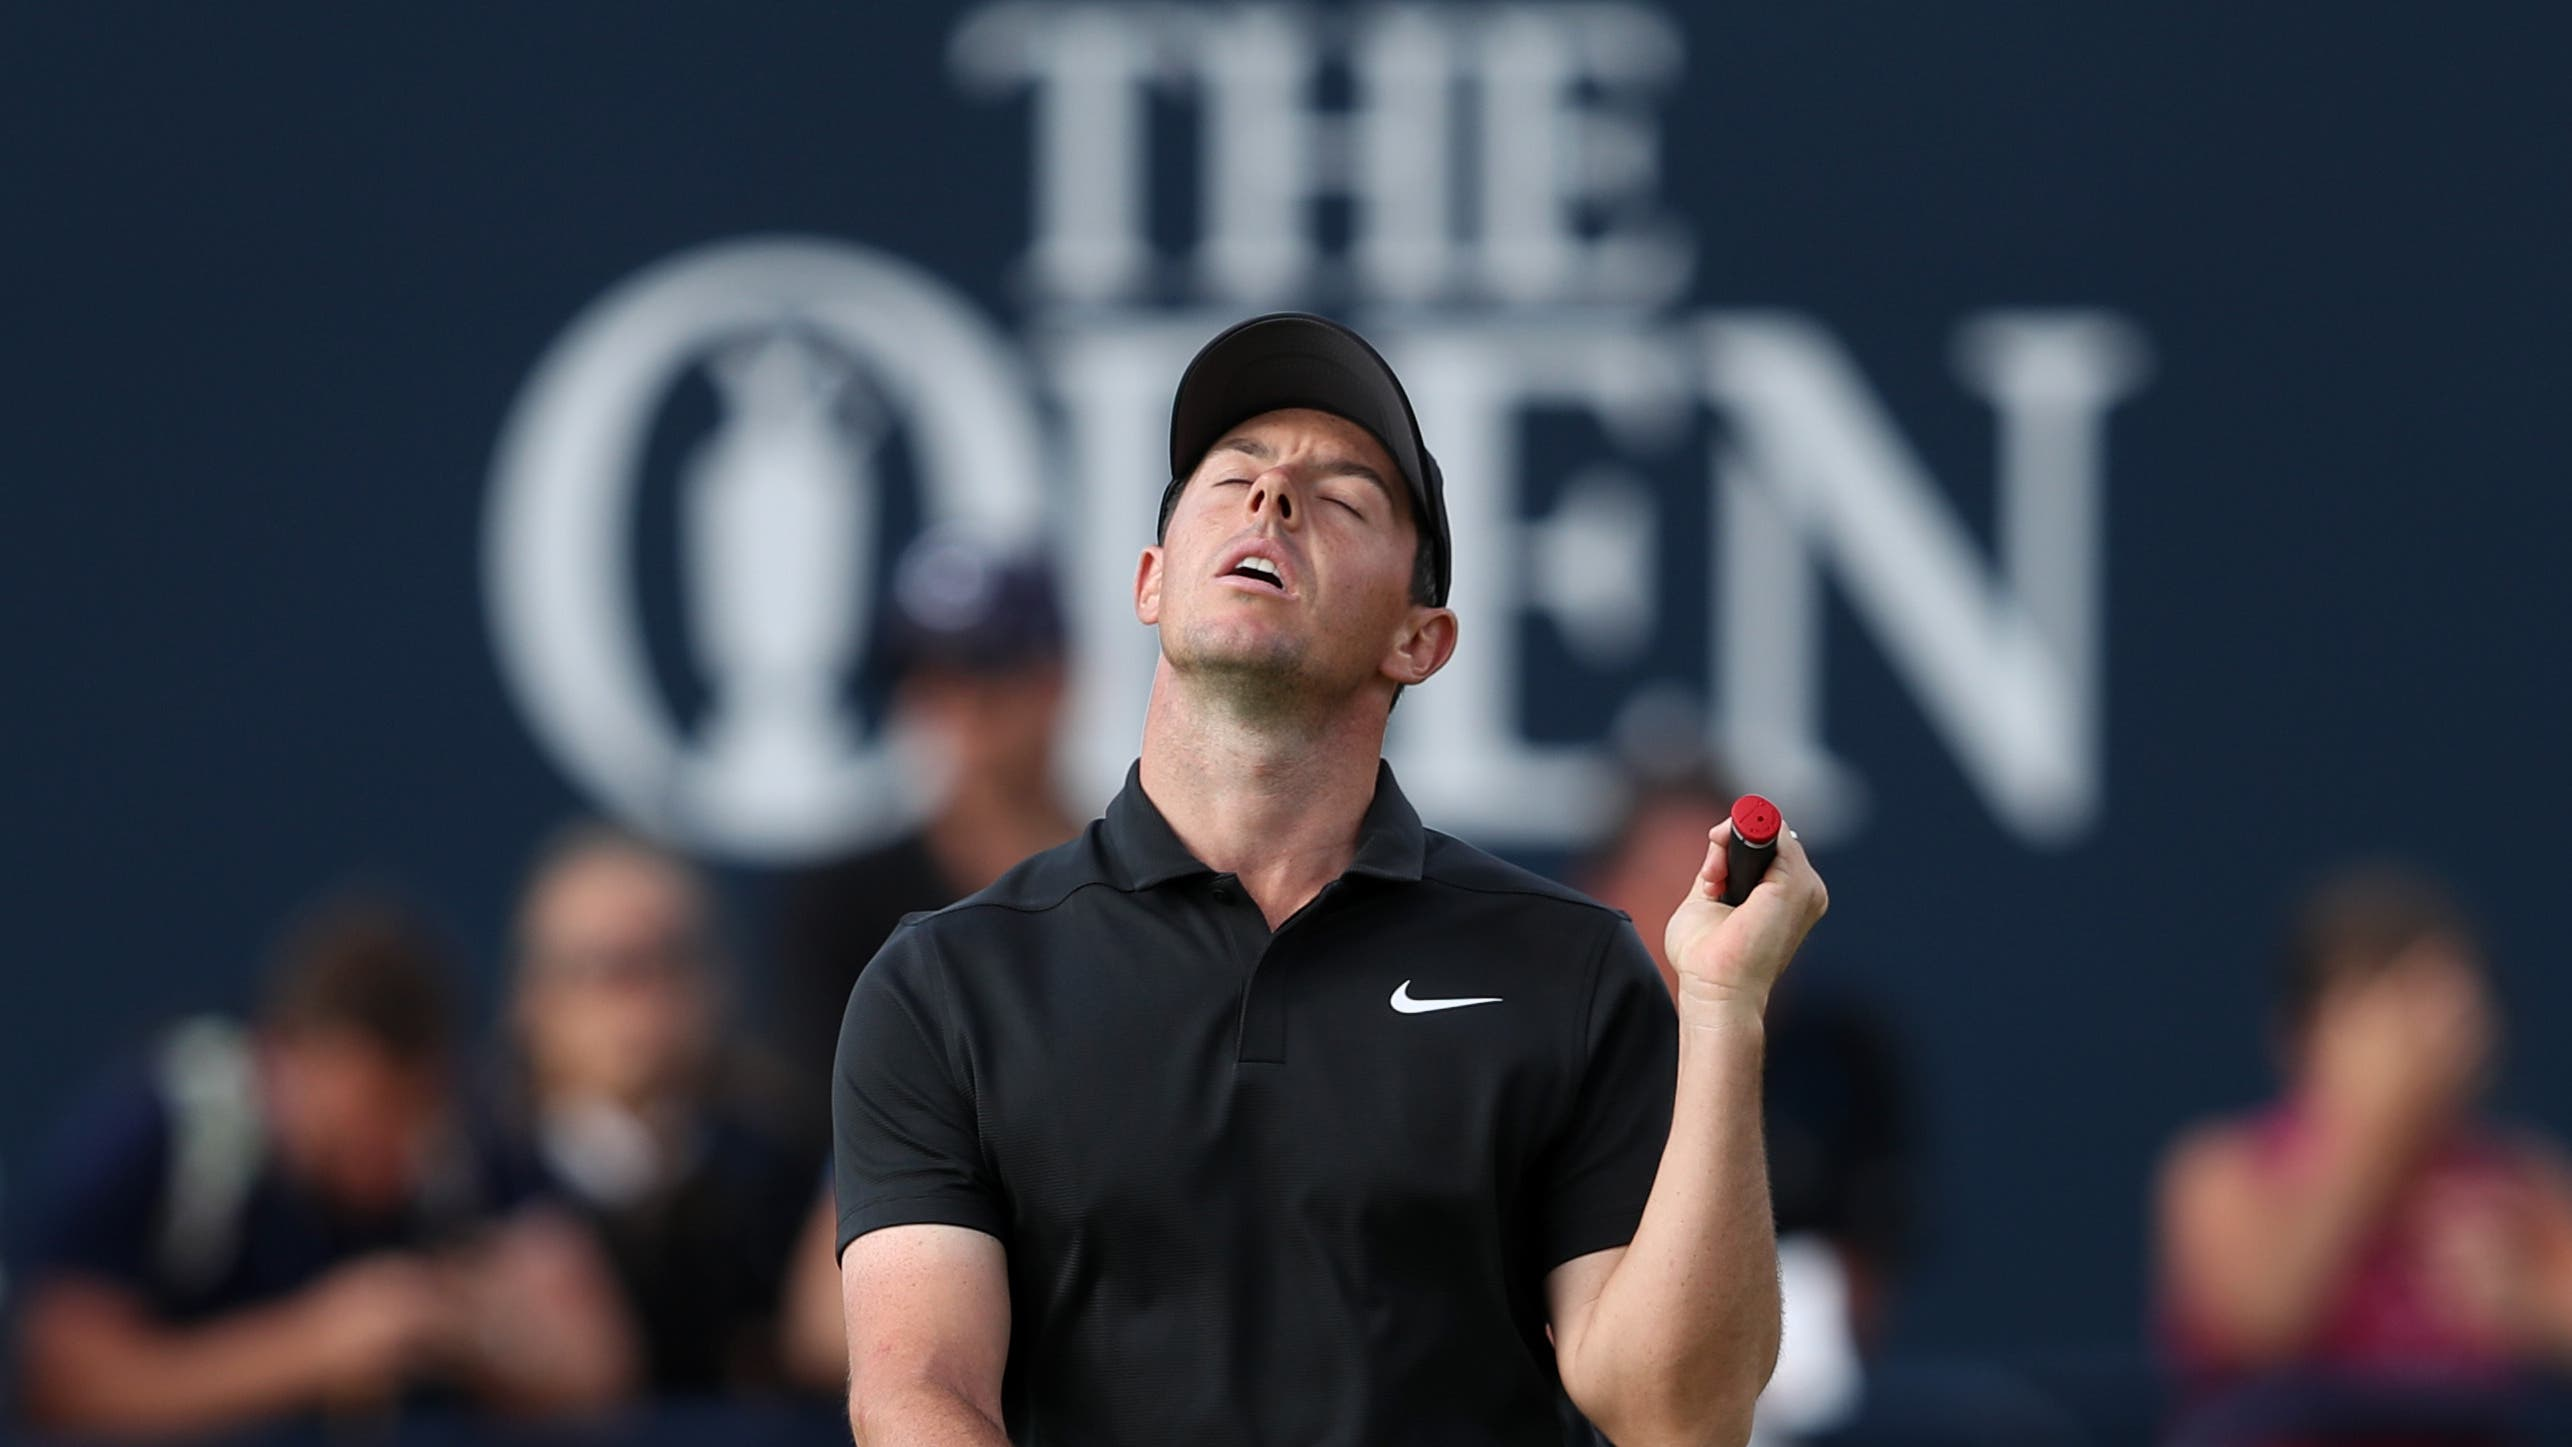 Rory McIlroy is a four-time major winner